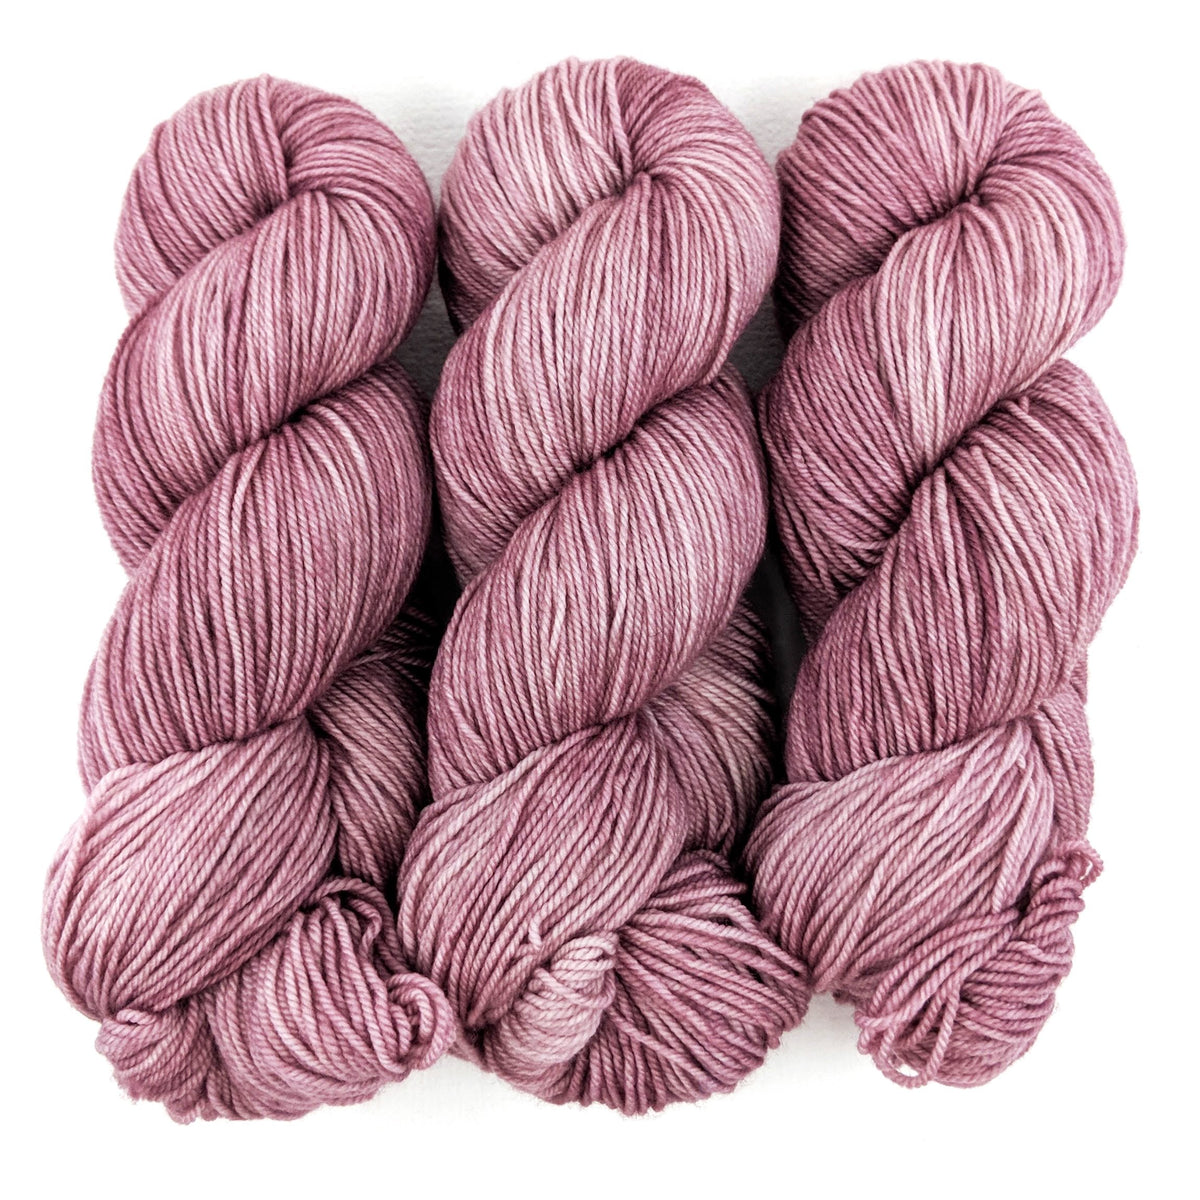 Dusty Rose - Socknado Fingering - Dyed Stock